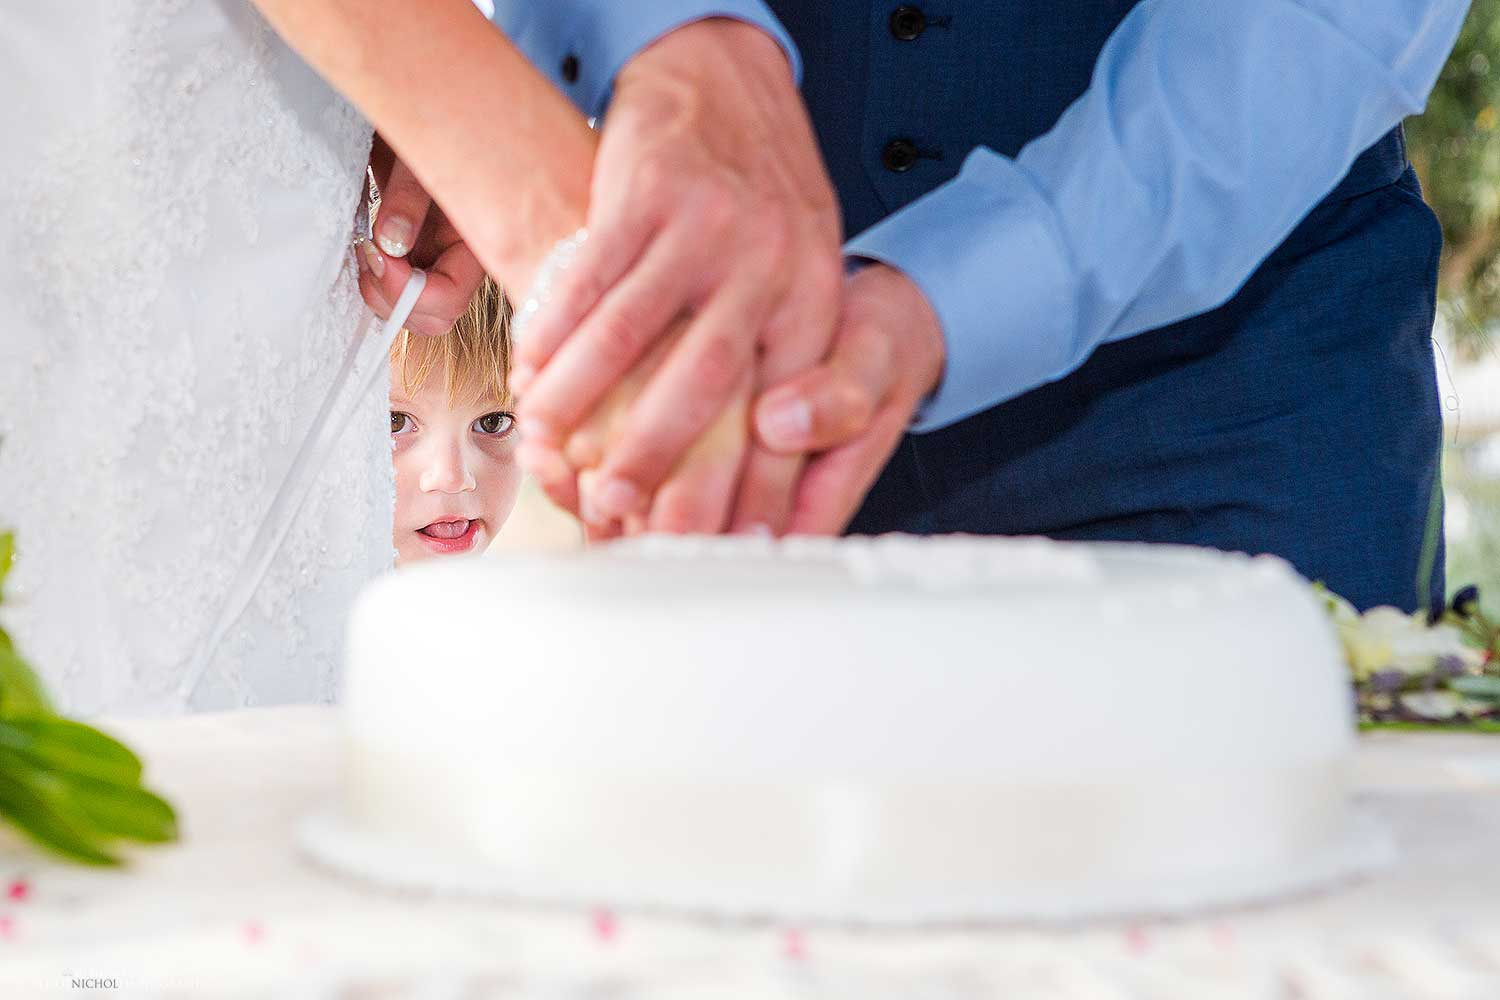 The temptation is too much for this small boy as he sneaks in behind the bride and groom while they cut their wedding cake. Photo by wedding photojournalist Elliot Nichol.